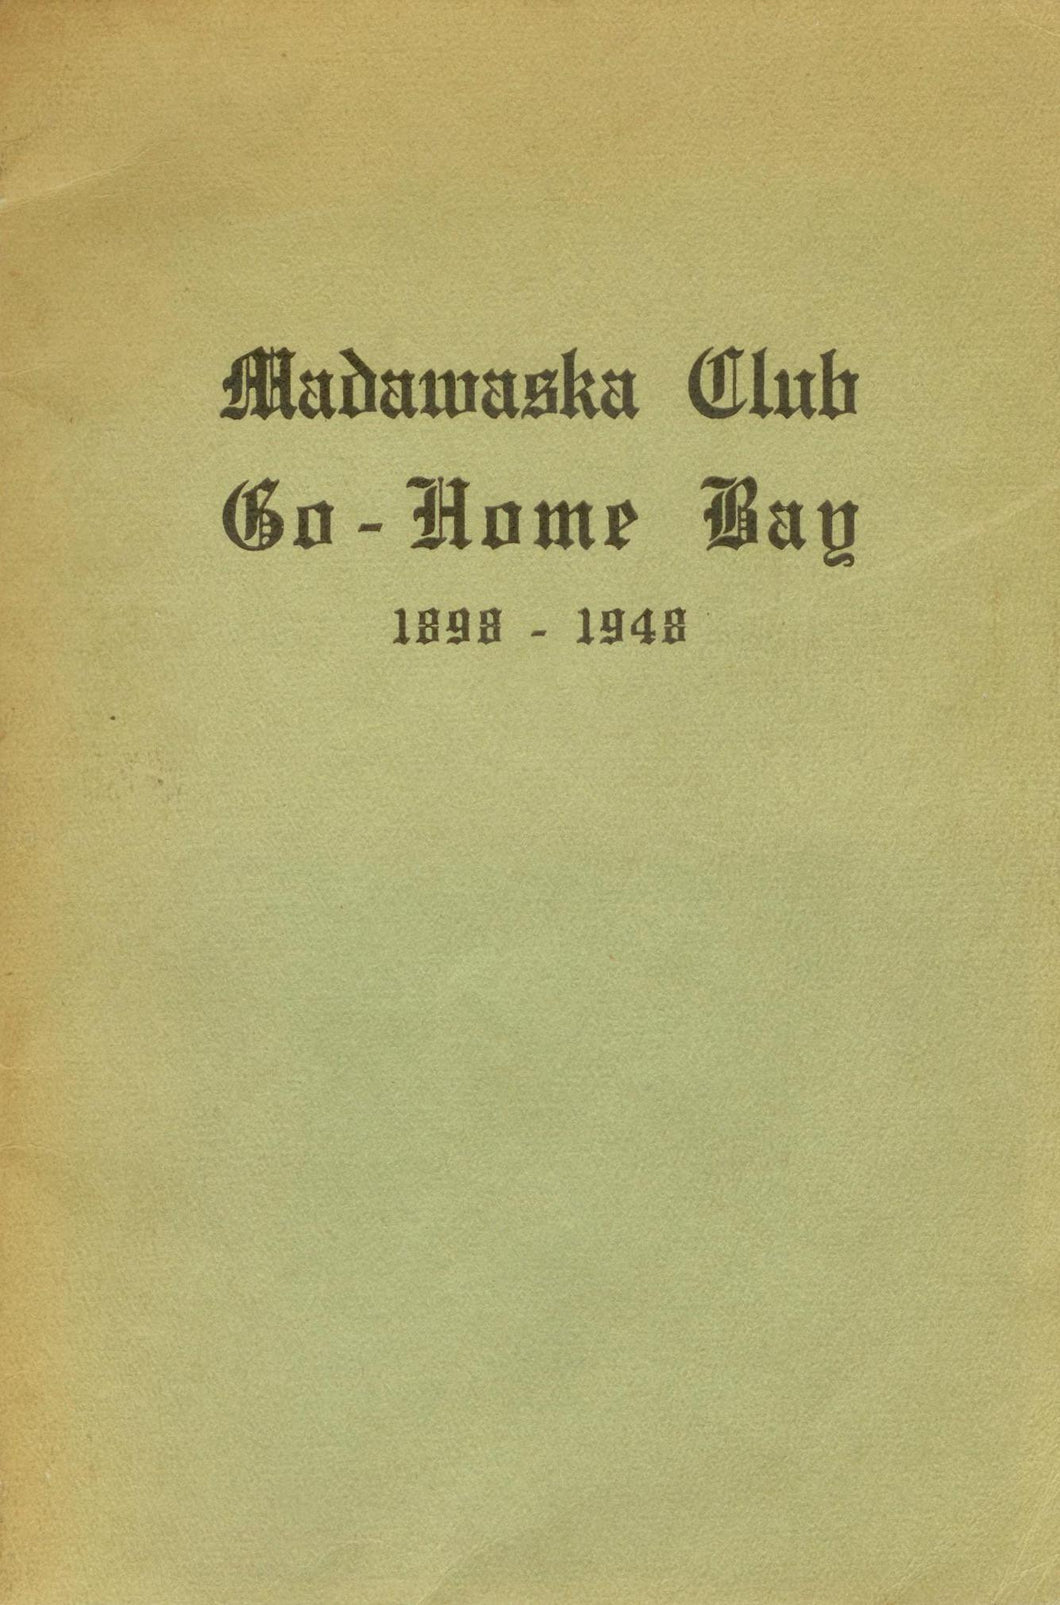 The Madawaska Club Go-Home Bay 1898-1948